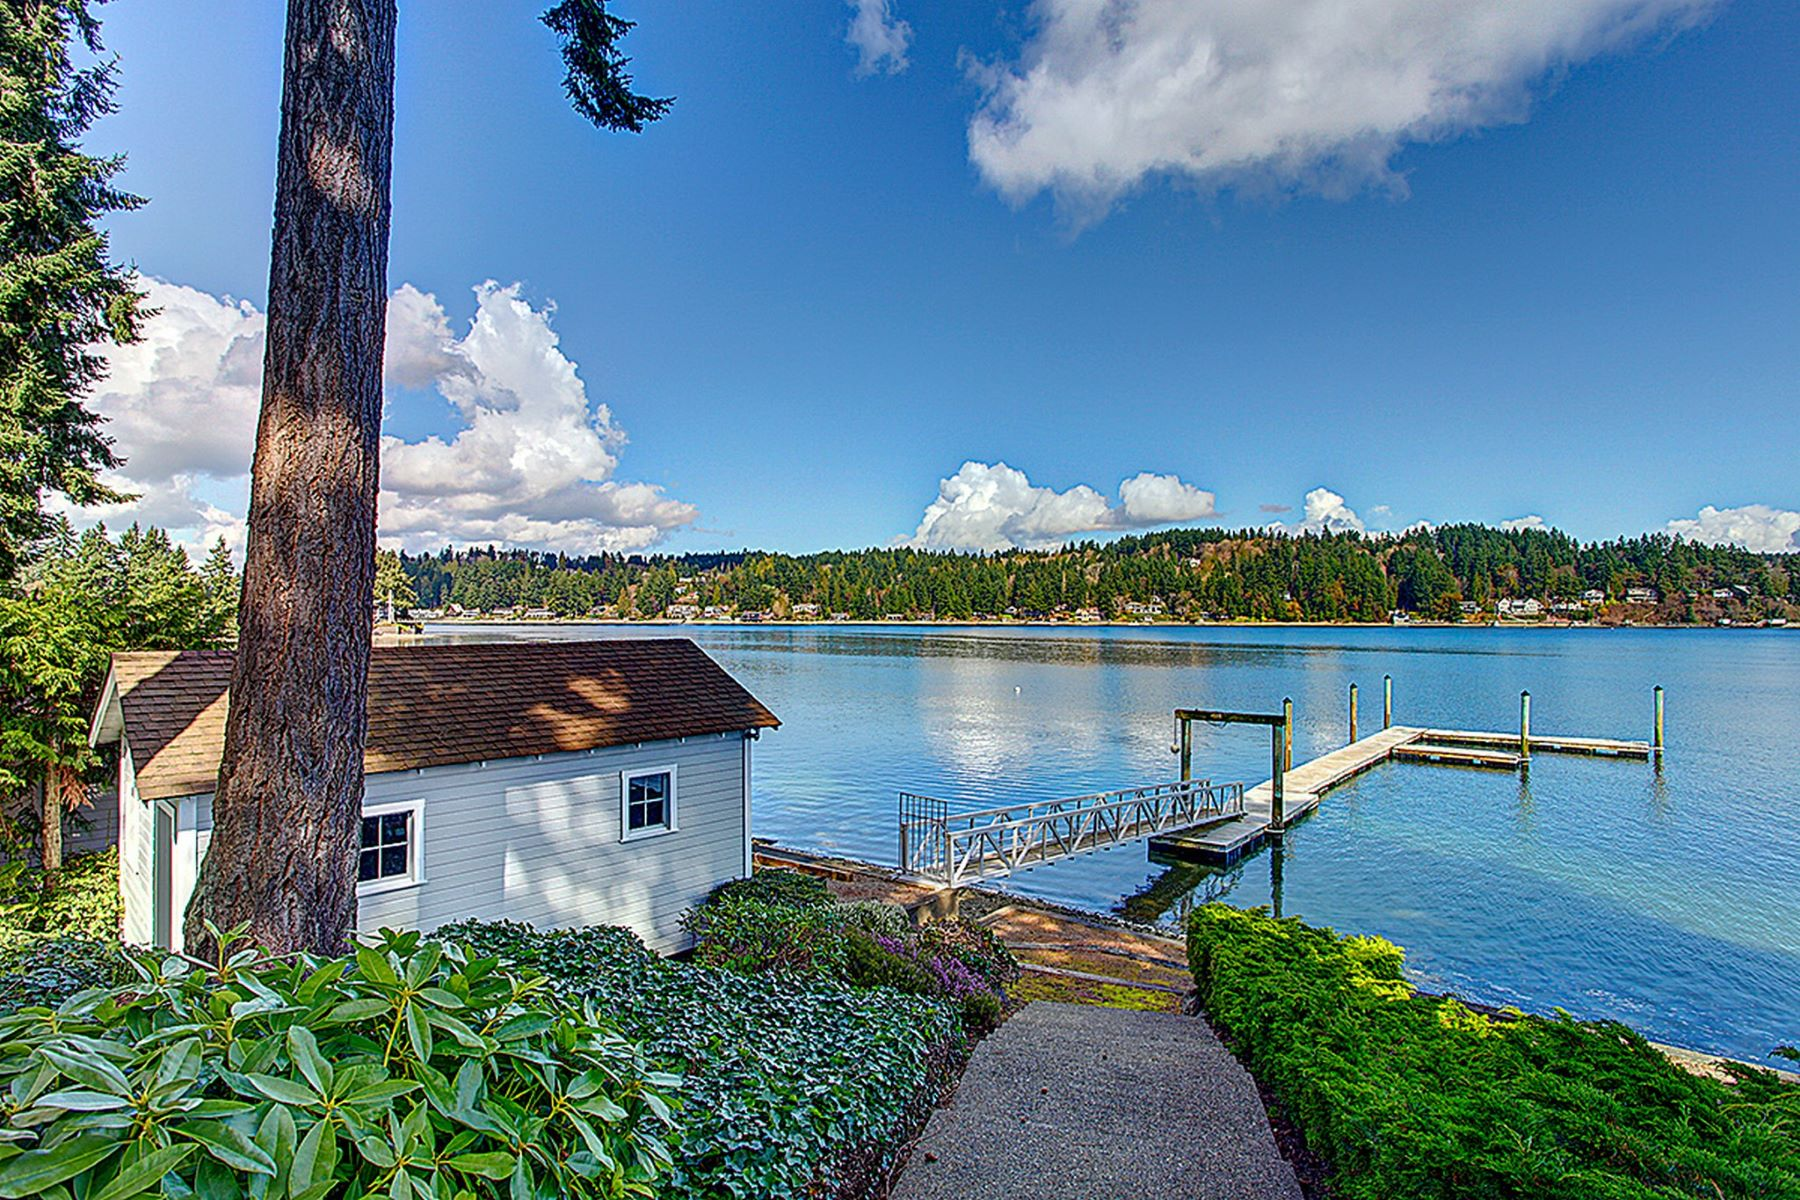 Single Family Home for Sale at Wollochet Bay 2129 50th Ave NW Gig Harbor, Washington 98332 United States